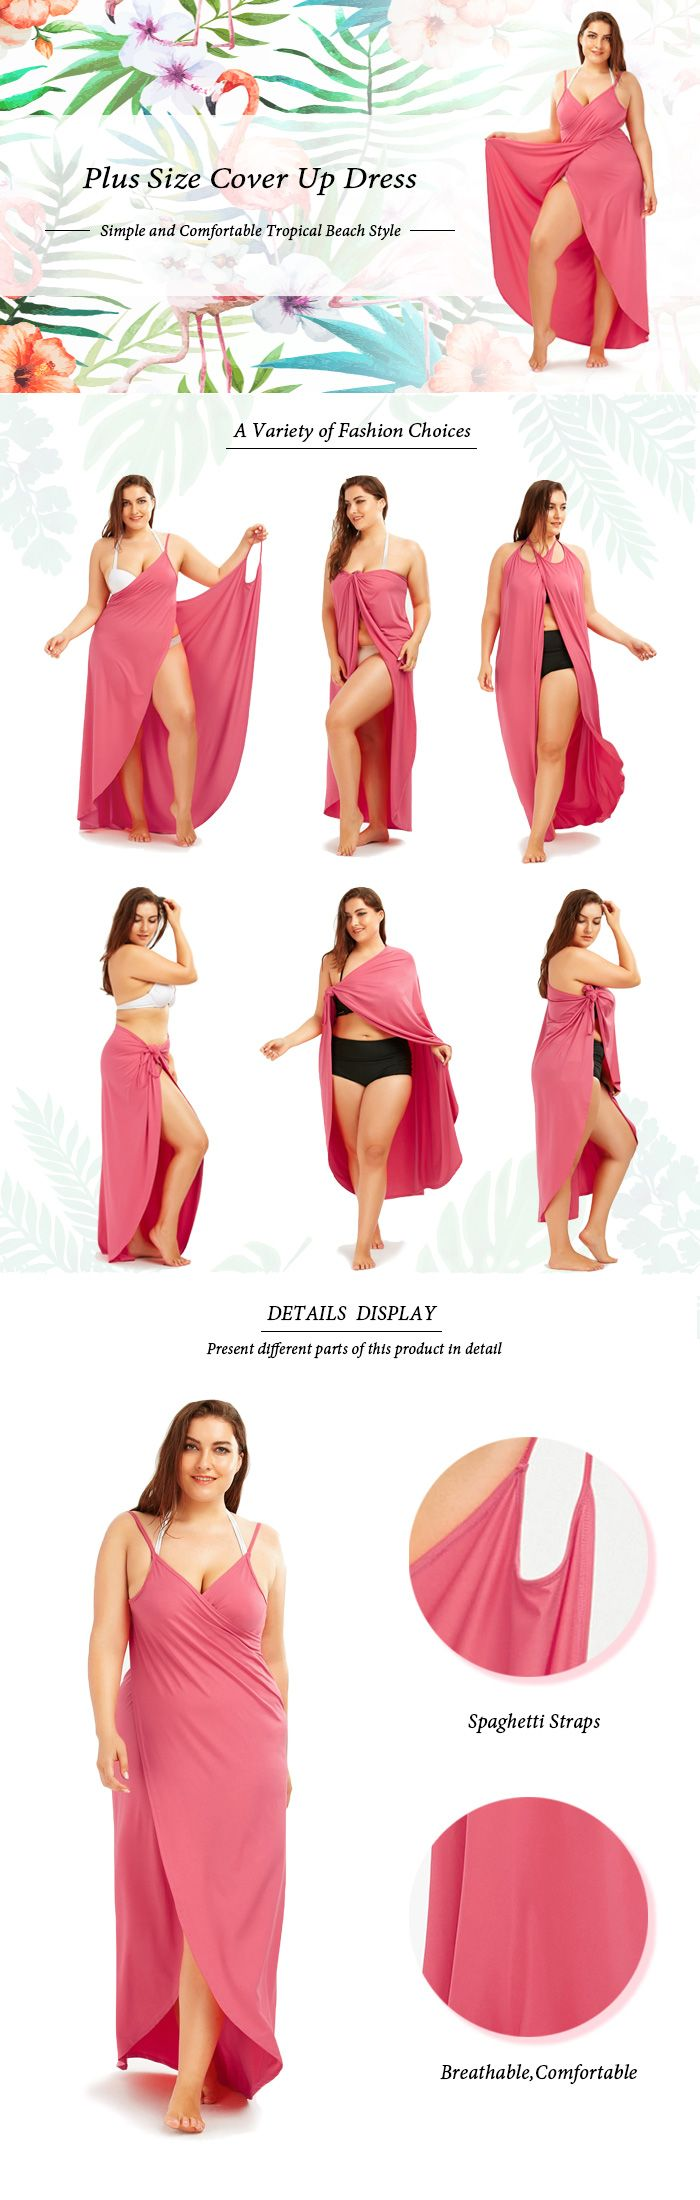 How to wear a cover up dress with steps